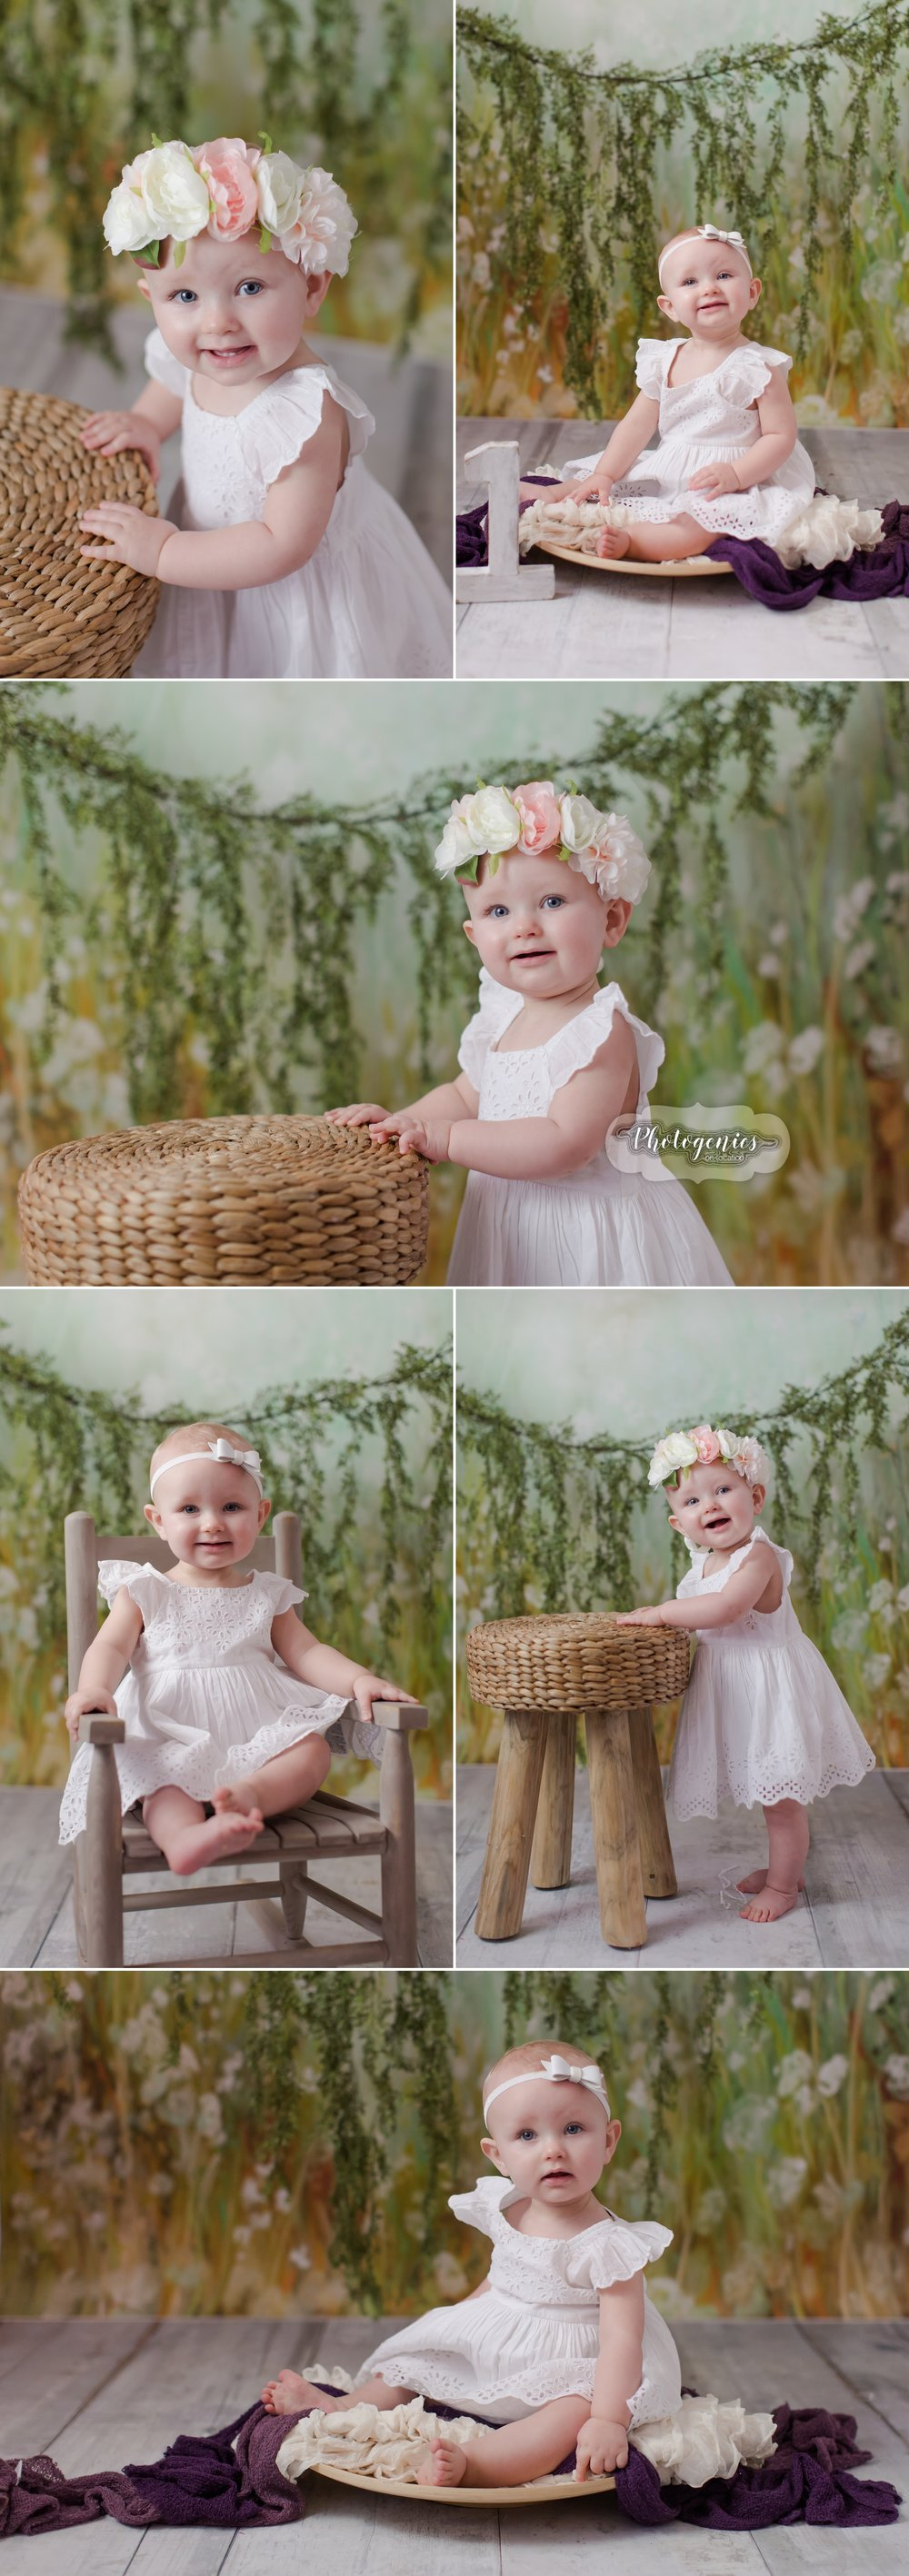 birthday_photography_girl_cake_smash_vintage_flowers_unique_ideas_indoor_family_12_months_mos_poses_photo_props_outfits_what_to_wear 3